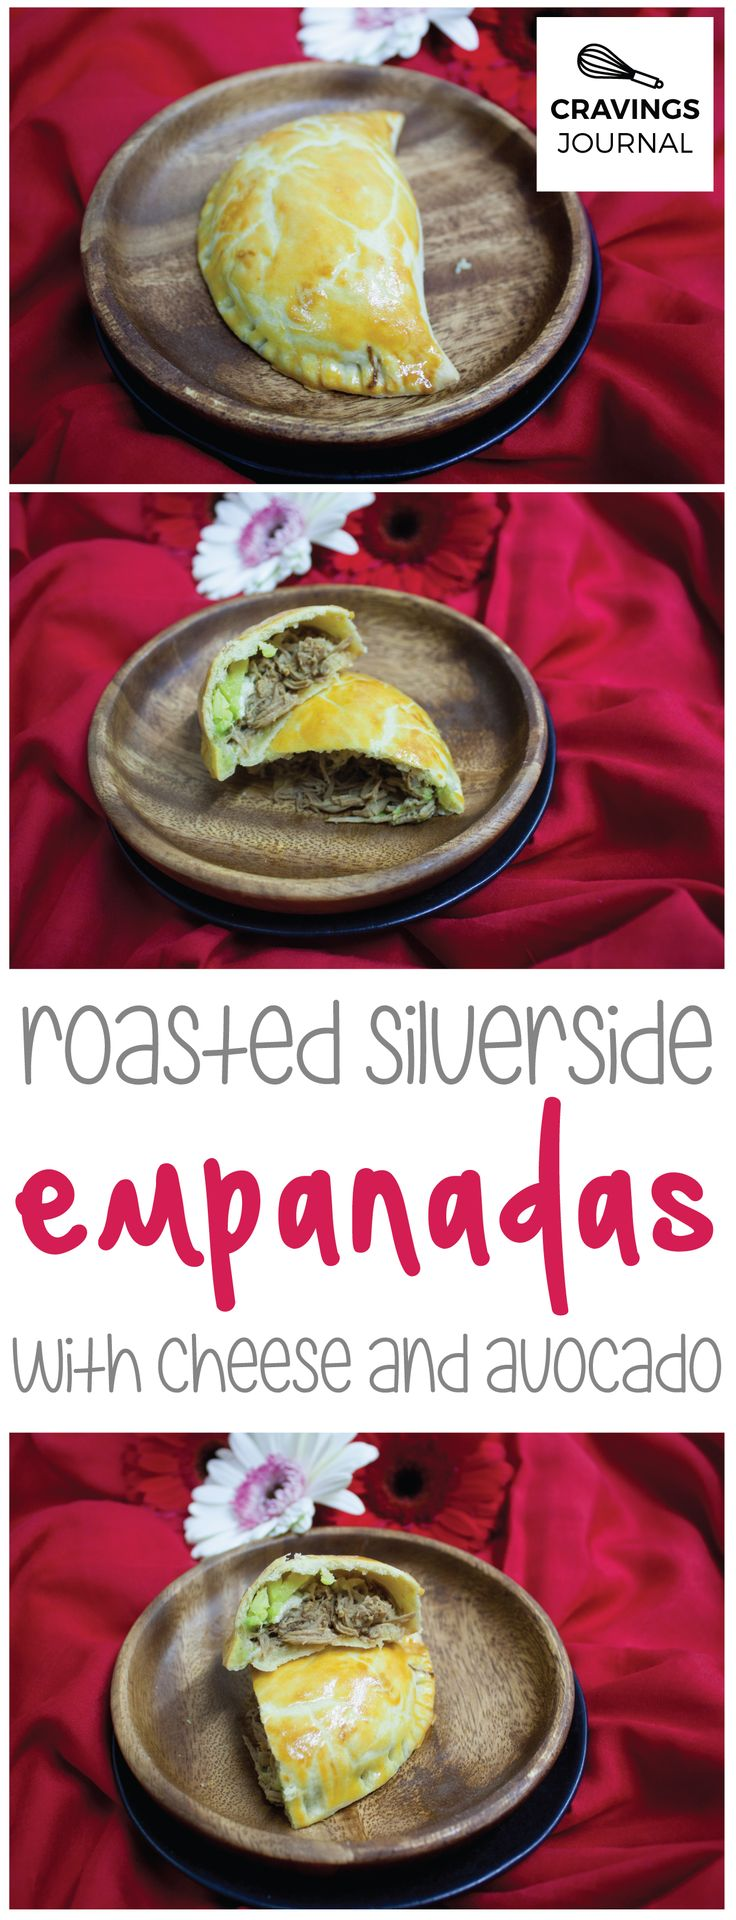 Typically prepared in Peruvian homes, this silverside roast goes beautiful inside an empanada with cheese and avocado! Must try.